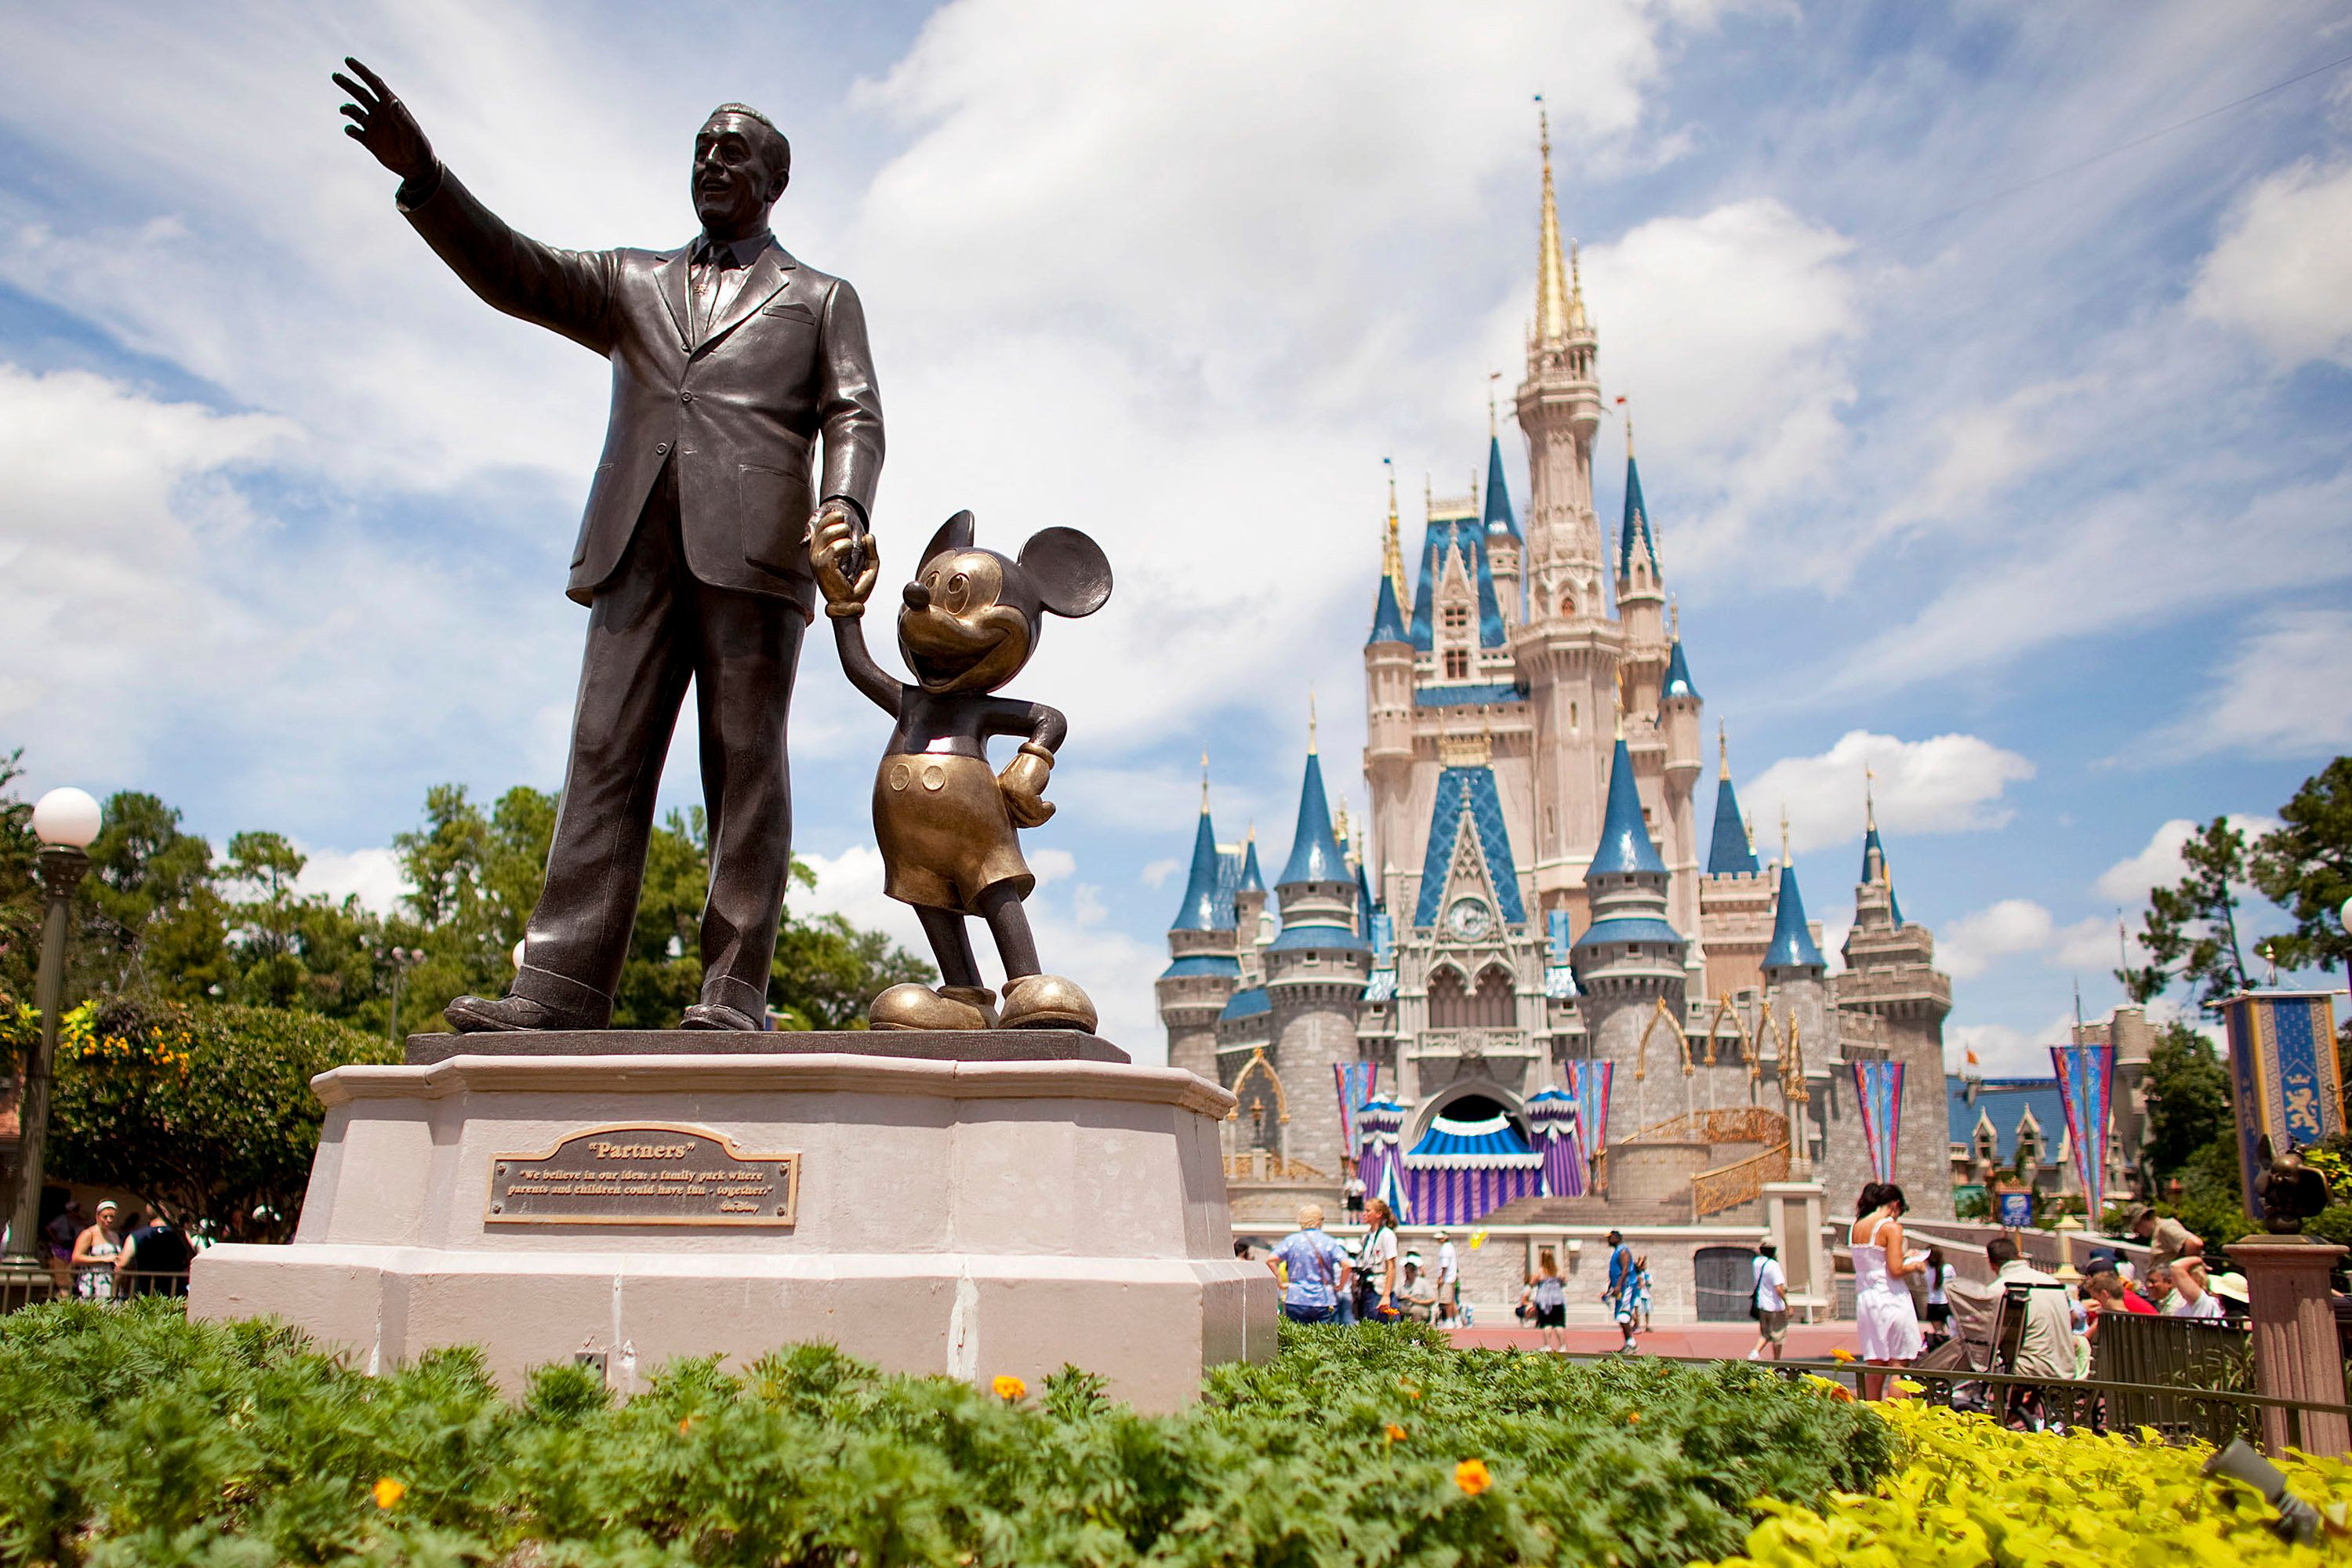 UNITED STATES - AUGUST 31:  'Partners,' a statue of Walt Disney and Mickey Mouse, sits in front of Cinderalla Castle at Magic Kingdom, part of the Walt Disney World theme park and resort in Lake Buena Vista, Florida, U.S., on Monday, Aug. 31, 2009. Walt Disney Co. said it agreed to buy Marvel Entertainment Inc. for about $4 billion in a stock and cash transaction, gaining comic book characters including Iron Man, Spider-Man and Captain America.  (Photo by Matt Stroshane/Bloomberg via Getty Images)